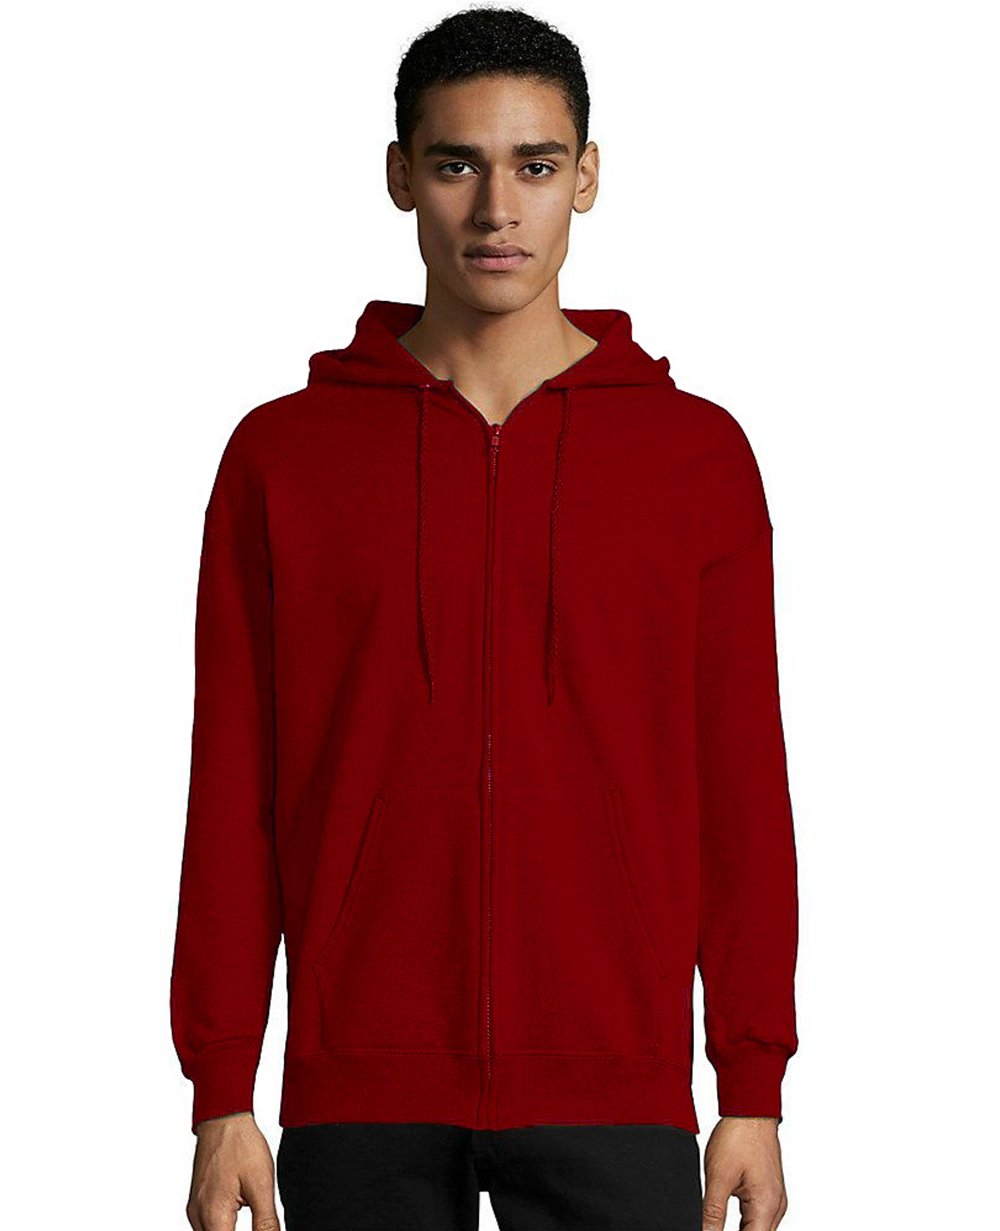 Zip-up Hoodie in Deep Red